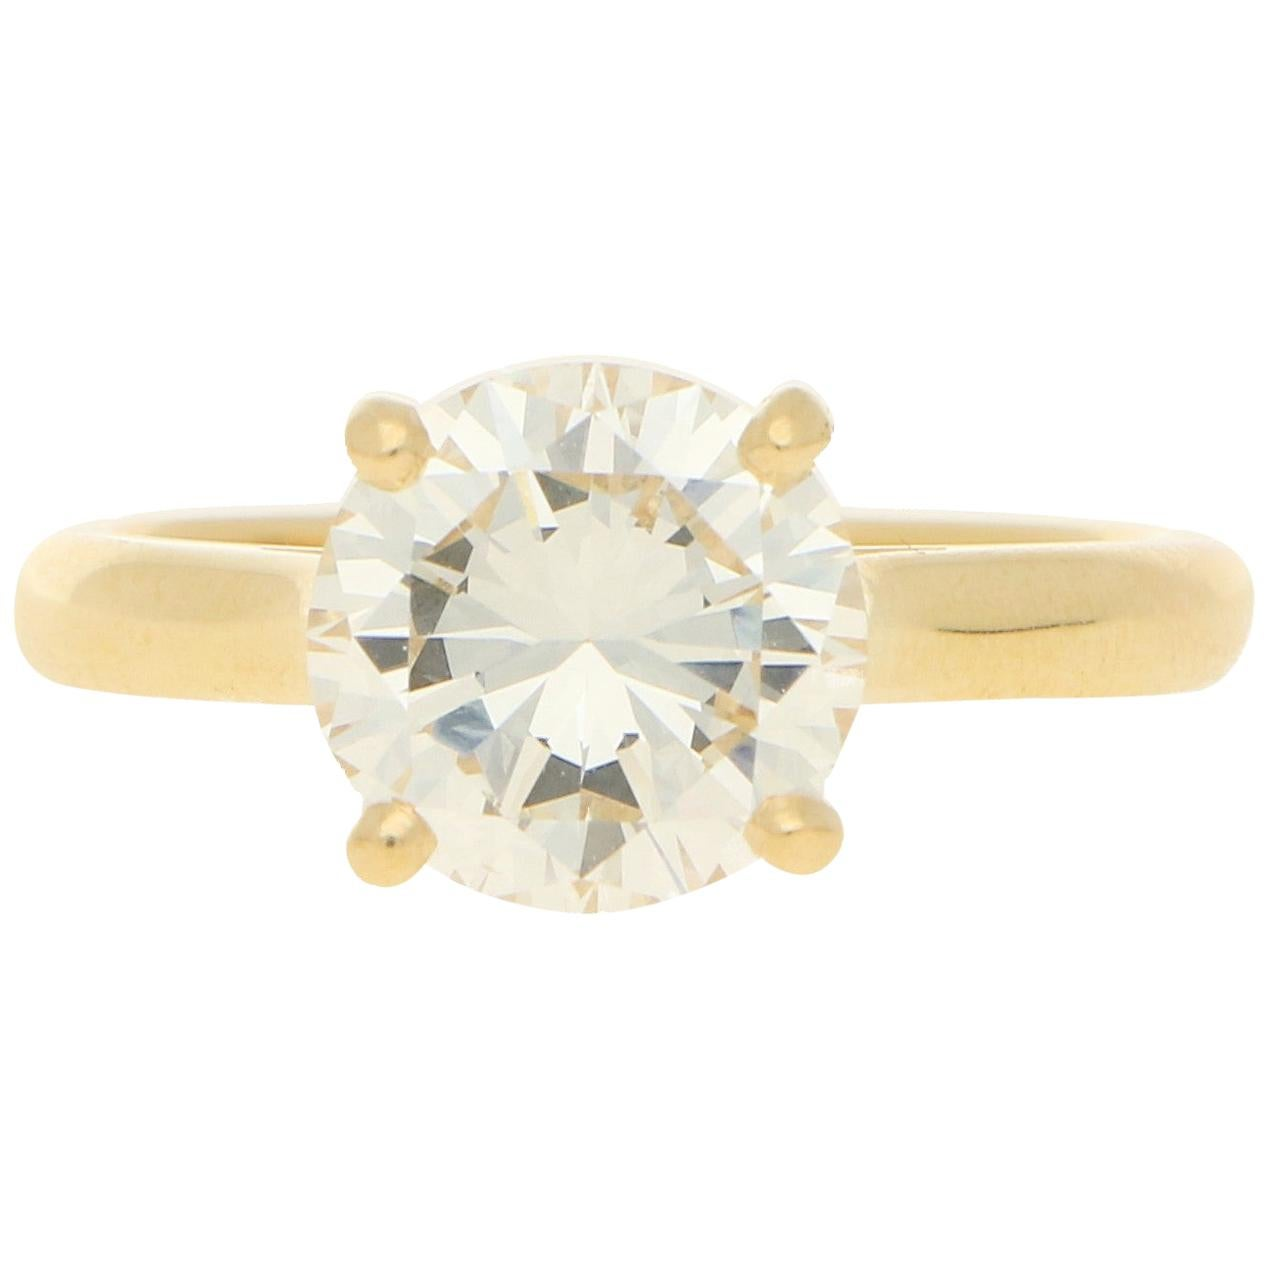 Certified Diamond Solitaire Engagement Ring Set in 18k Yellow Gold